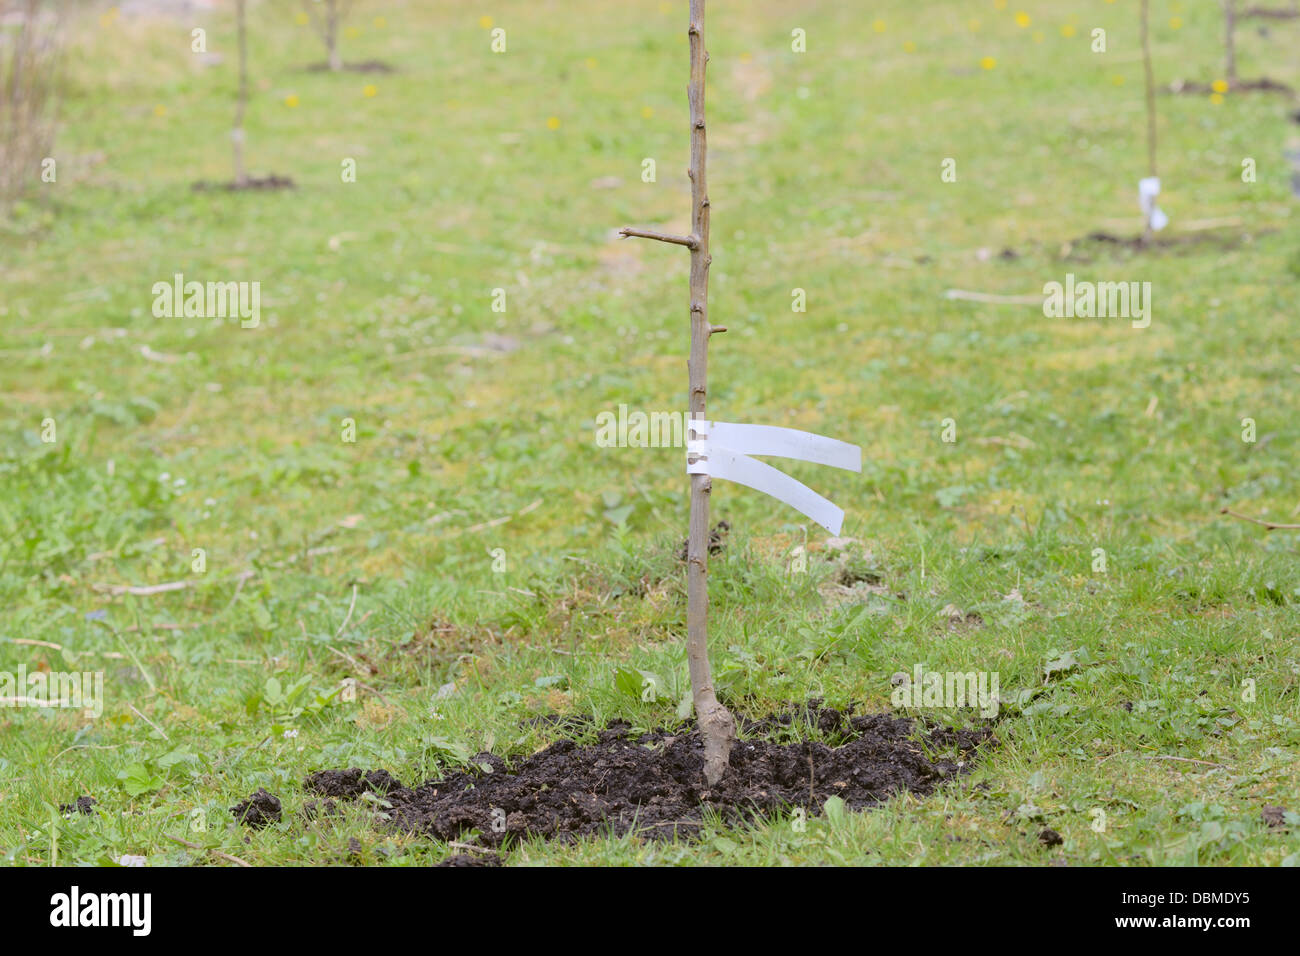 Young fruit trees recently planted in grassland with a mulch of composted human waste or Humanure, Wales, UK. - Stock Image